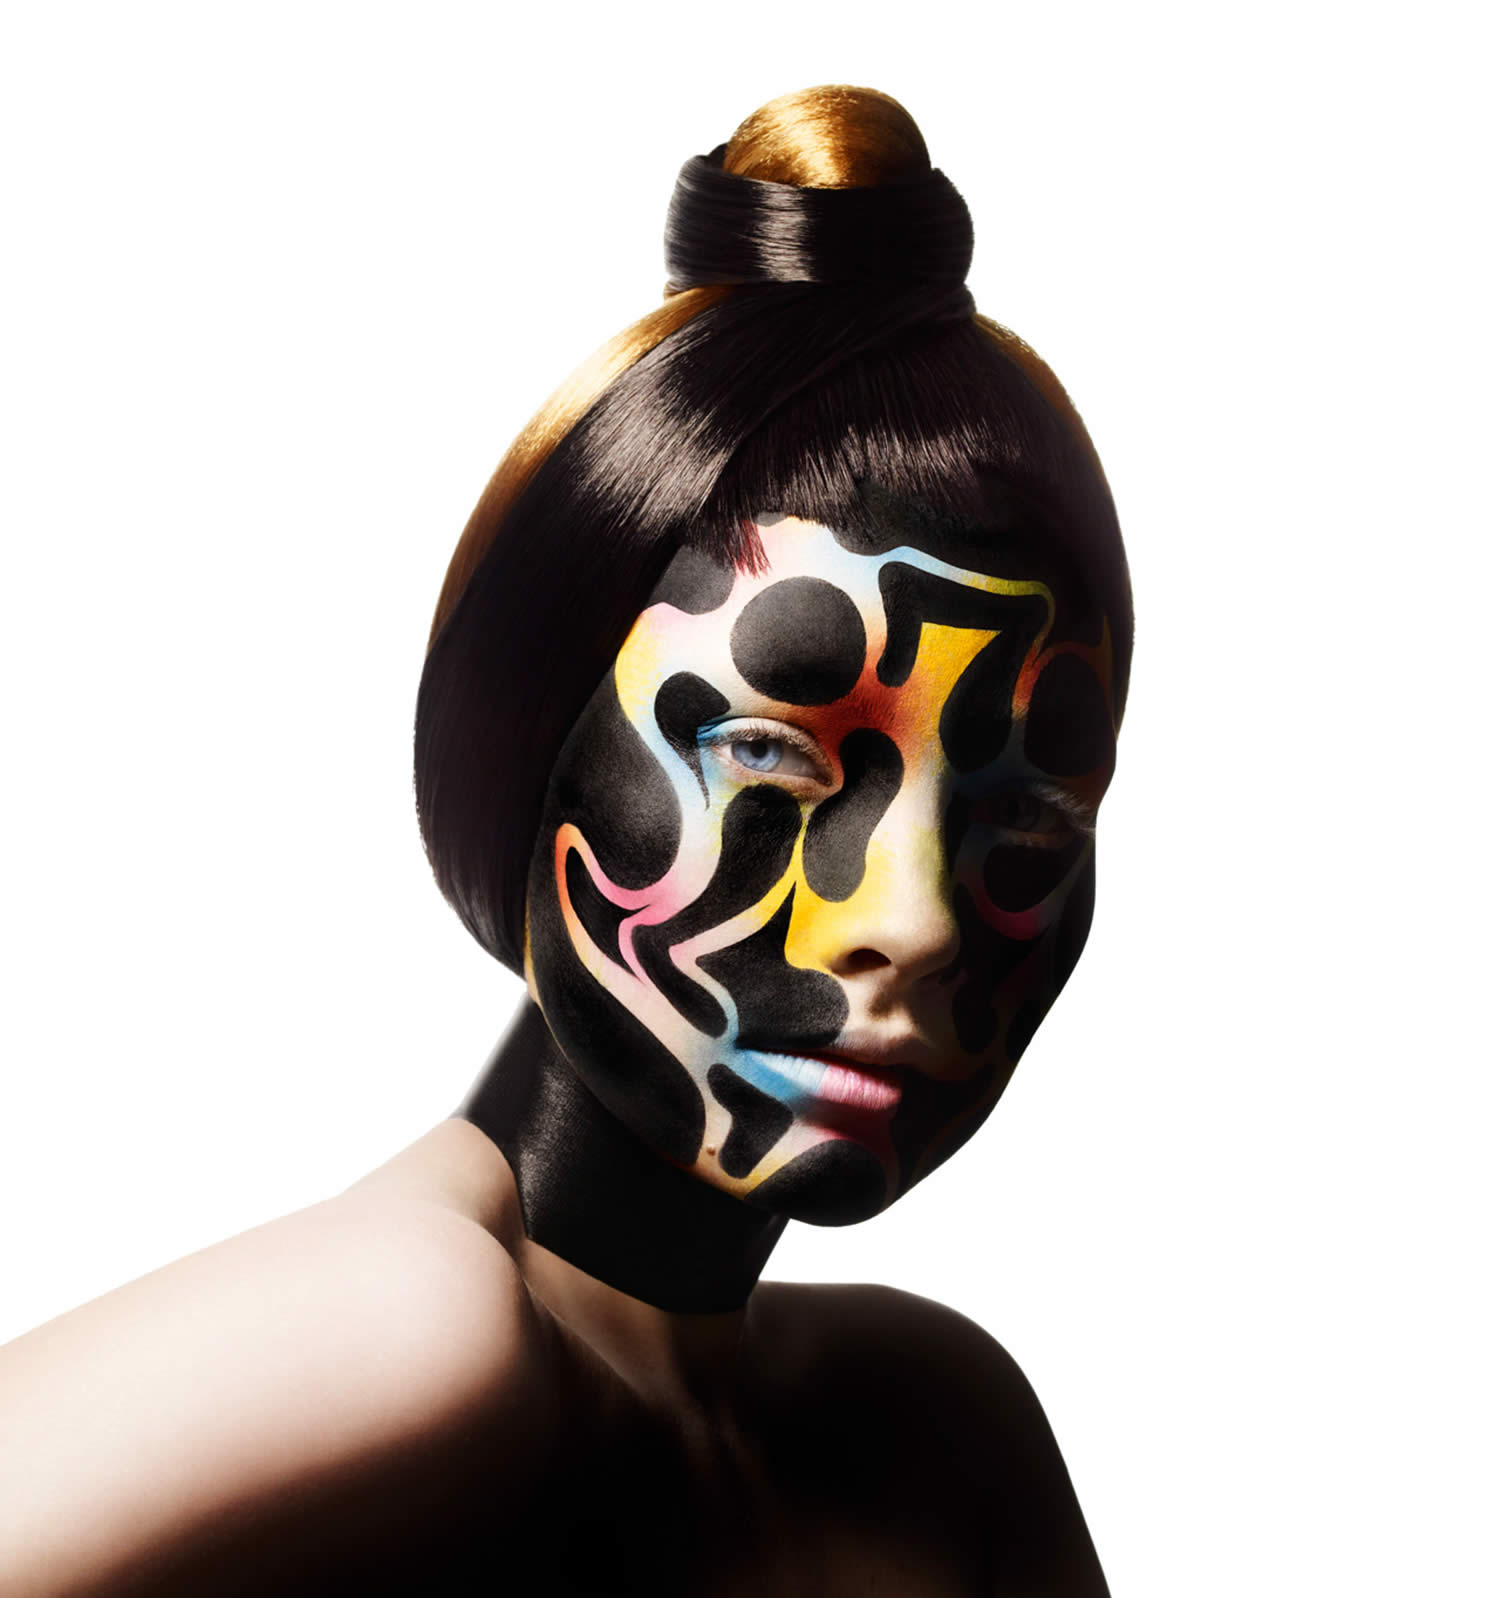 face painting on model, photo by rankin